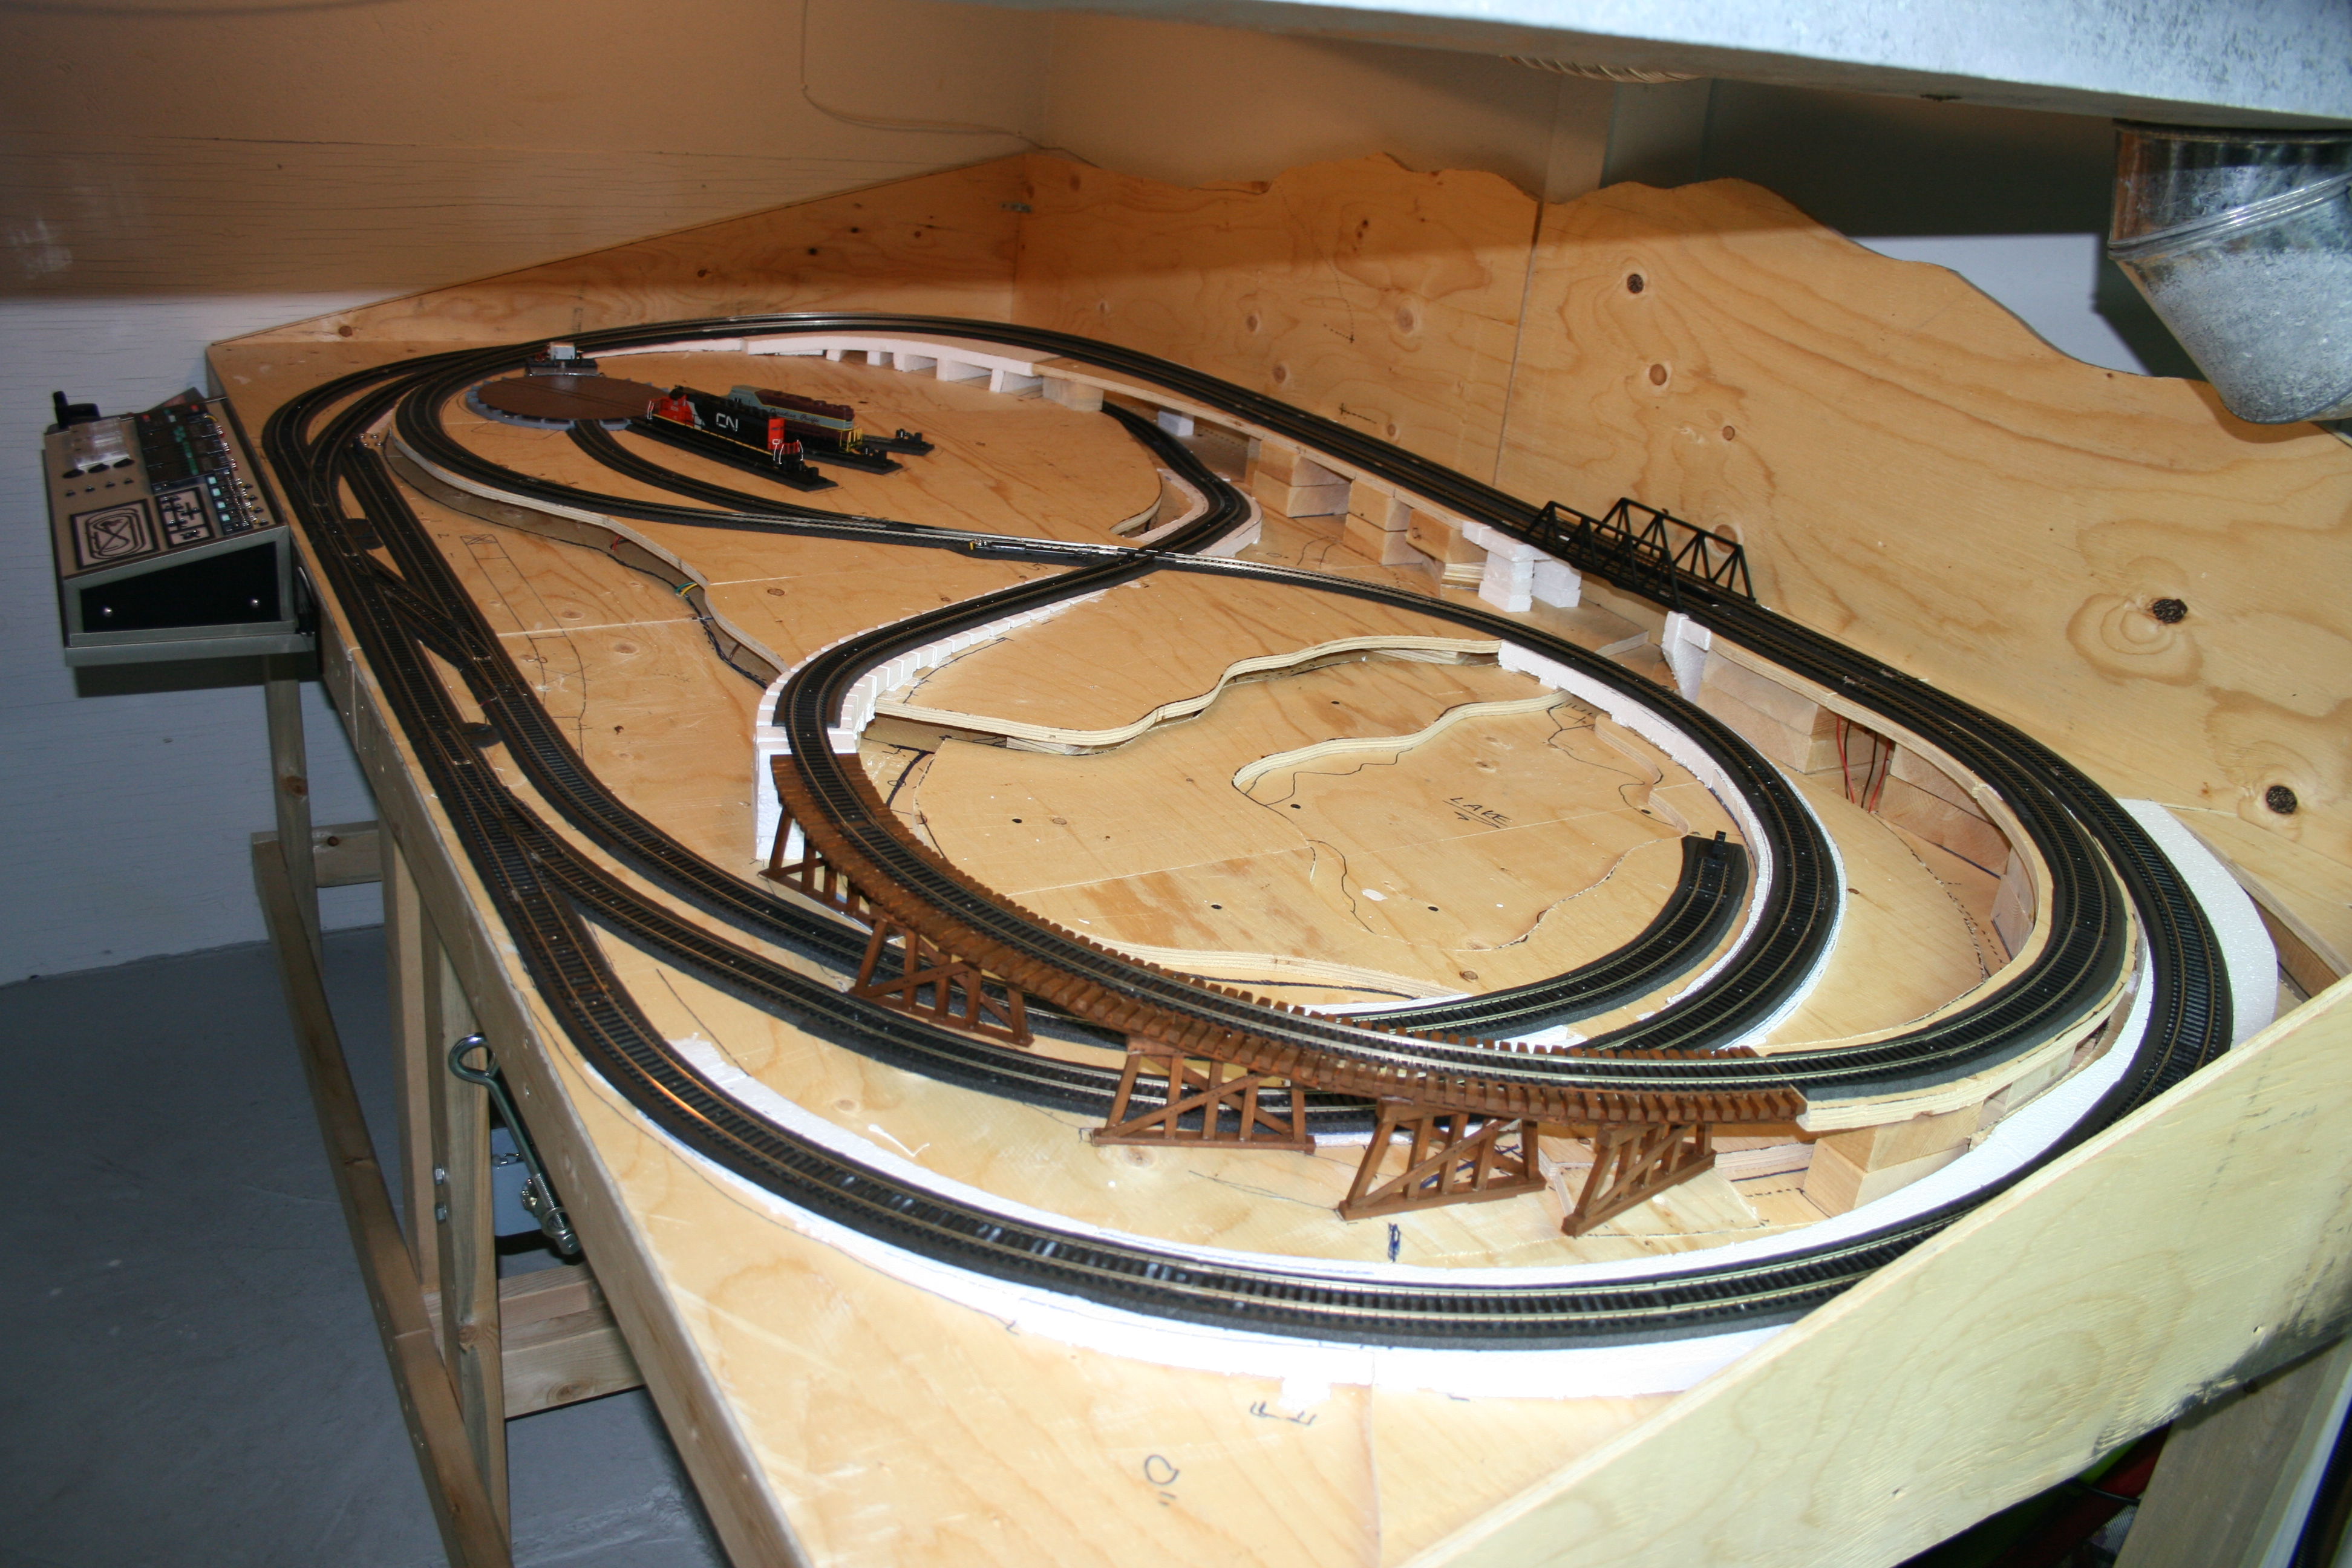 4 x 8 HO scale model railroad benchwork with completed track and control panel